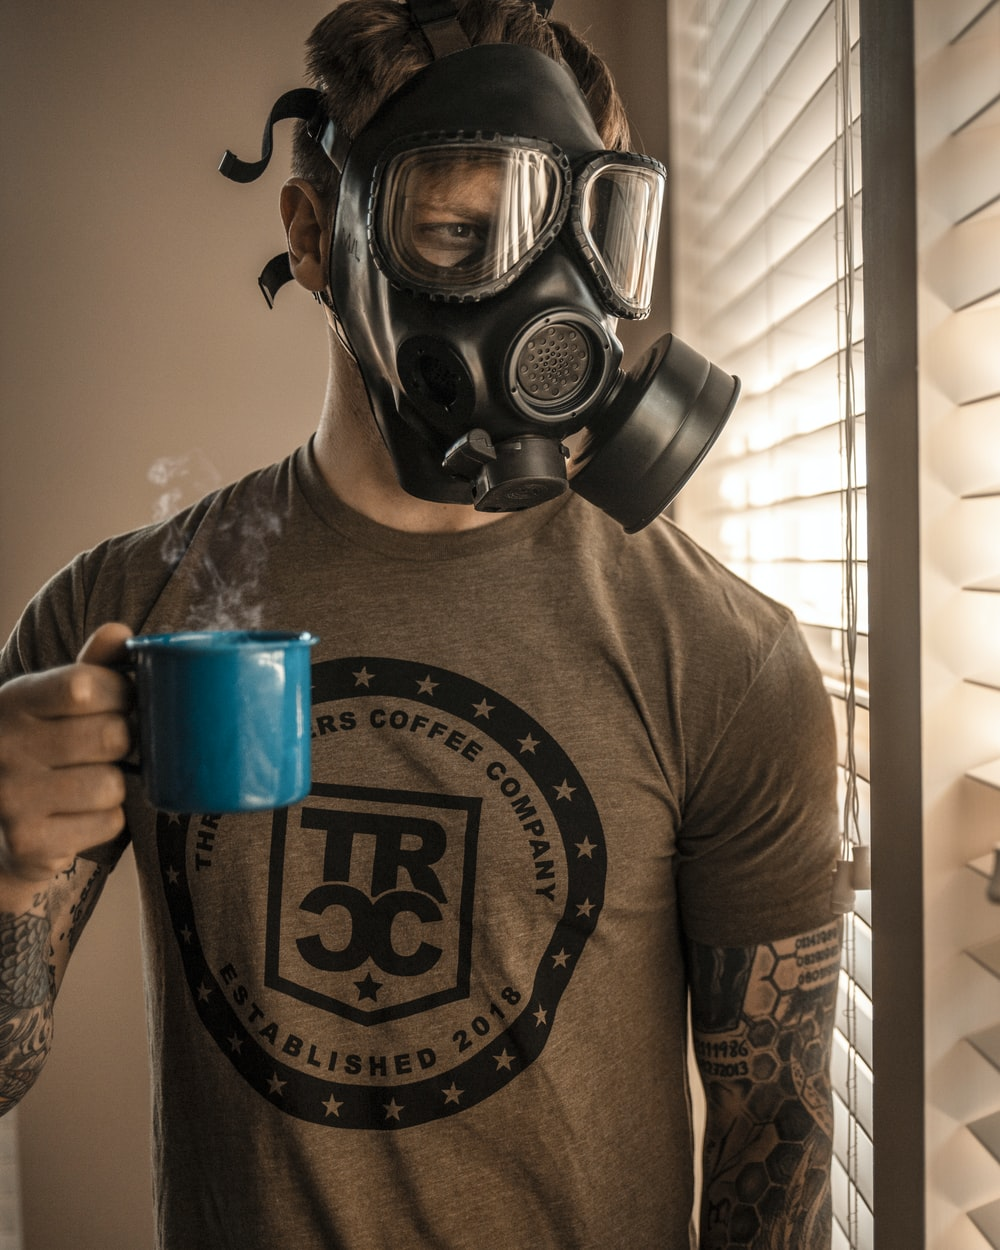 man in gray and black crew neck shirt wearing gas mask holding blue plastic cup